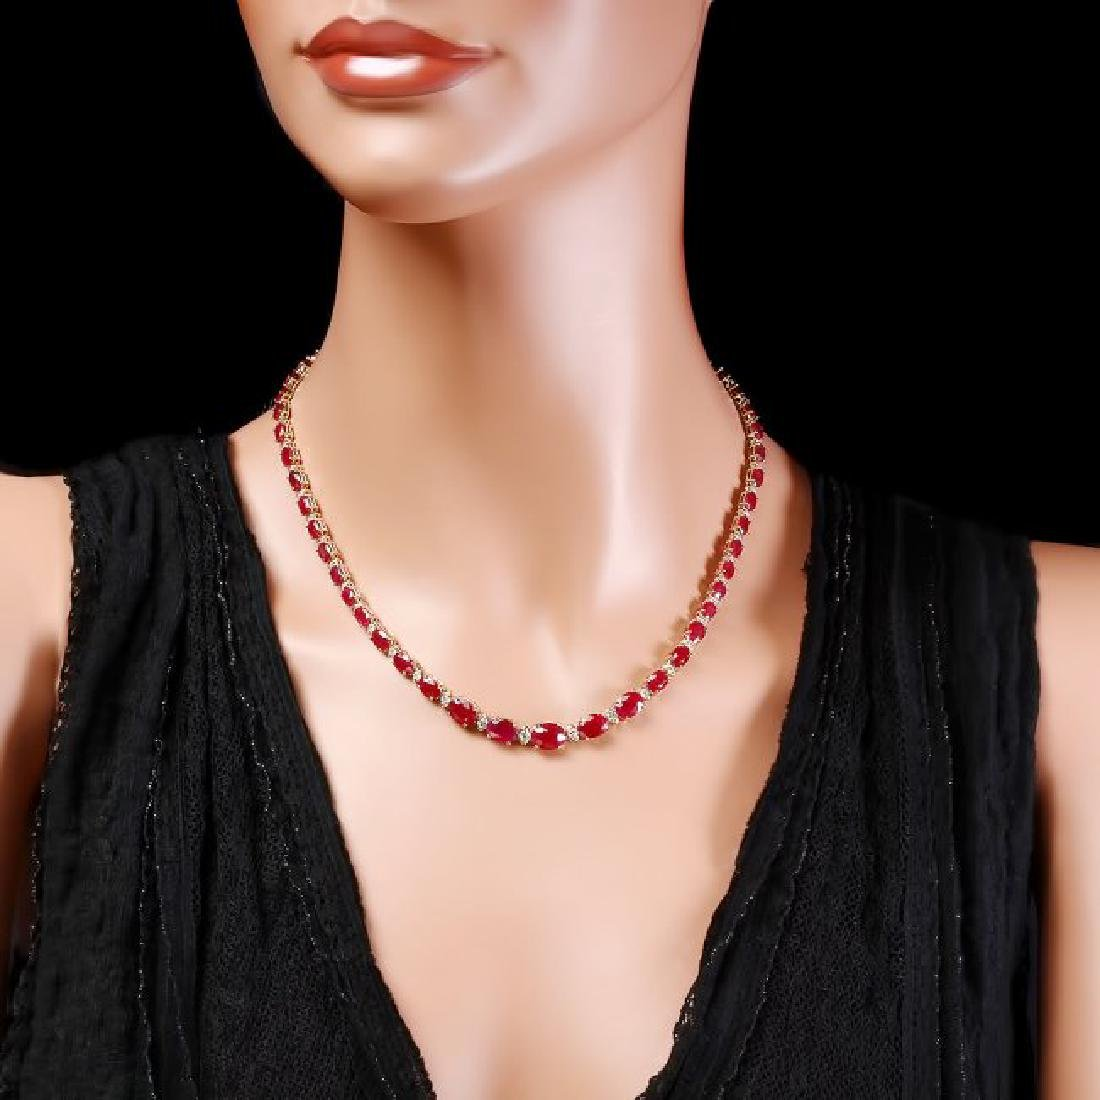 14k Gold 30.00ct Ruby 1.60ct Diamond Necklace - 4